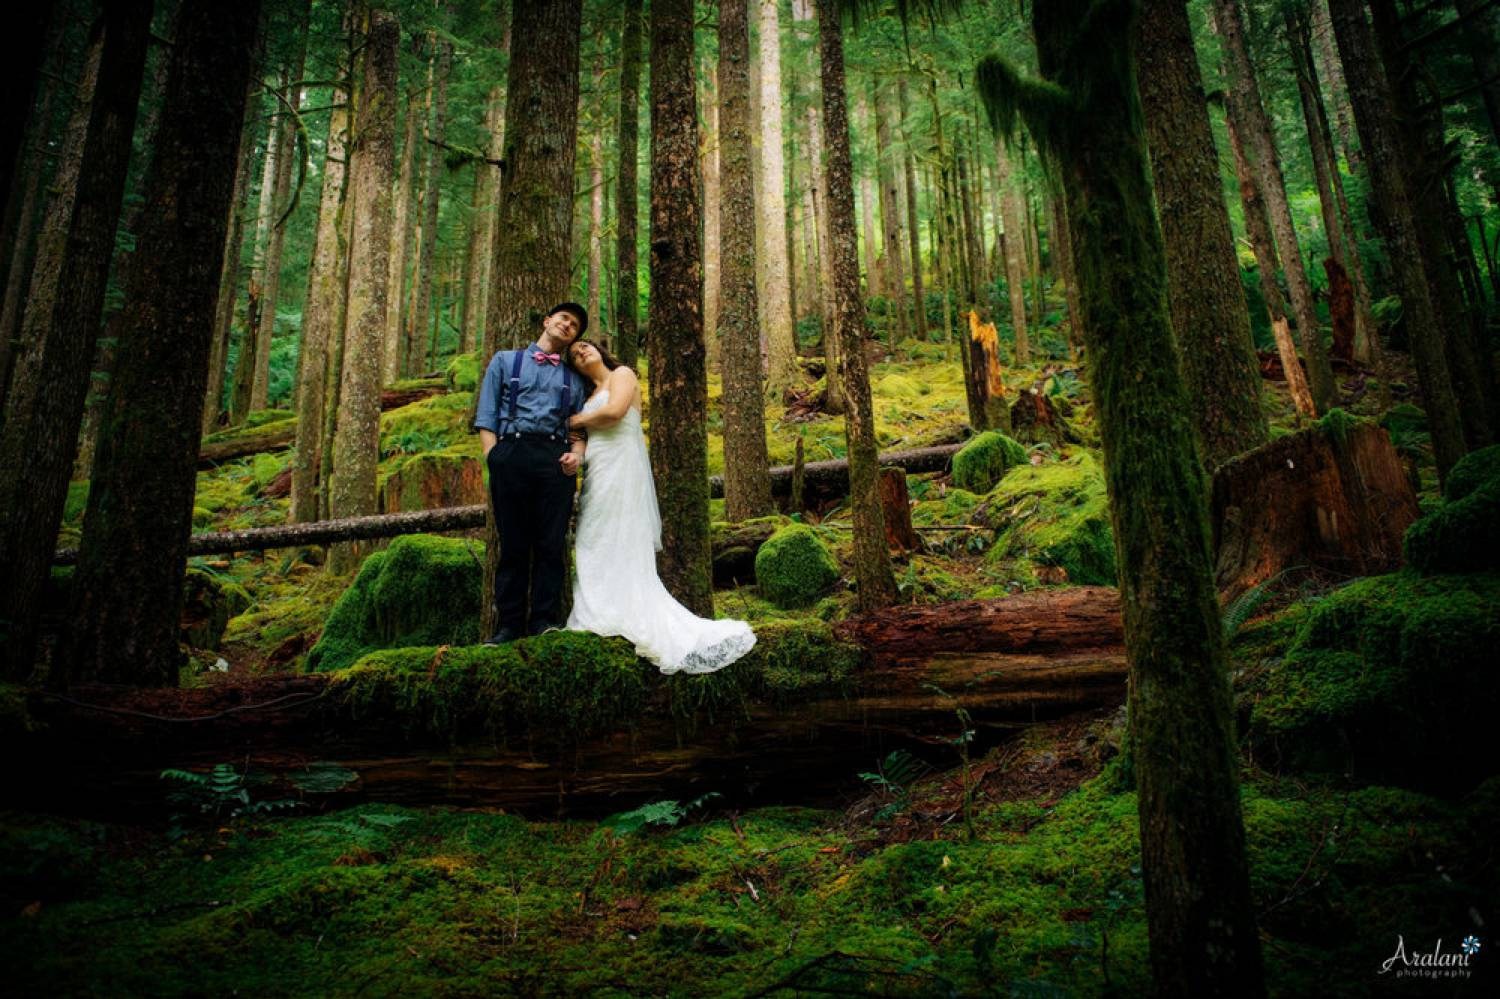 Ara Roselani's portrait of a bride and groom standing on a mossy, fallen log in the middle of a pacific northwest forest.